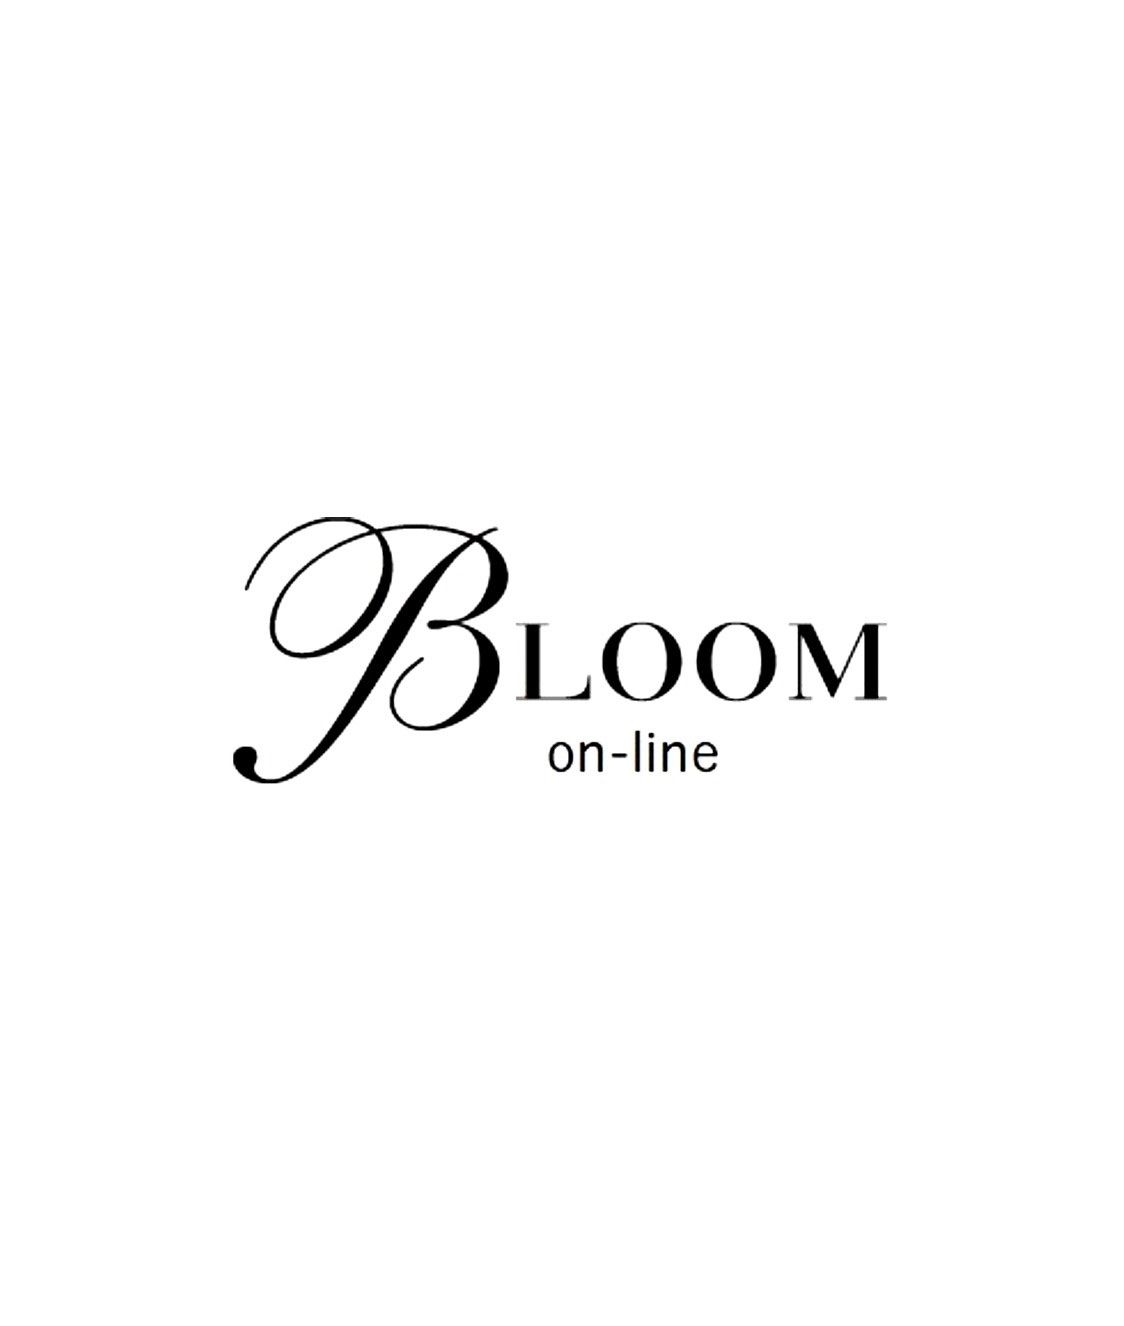 BLOOM on-line